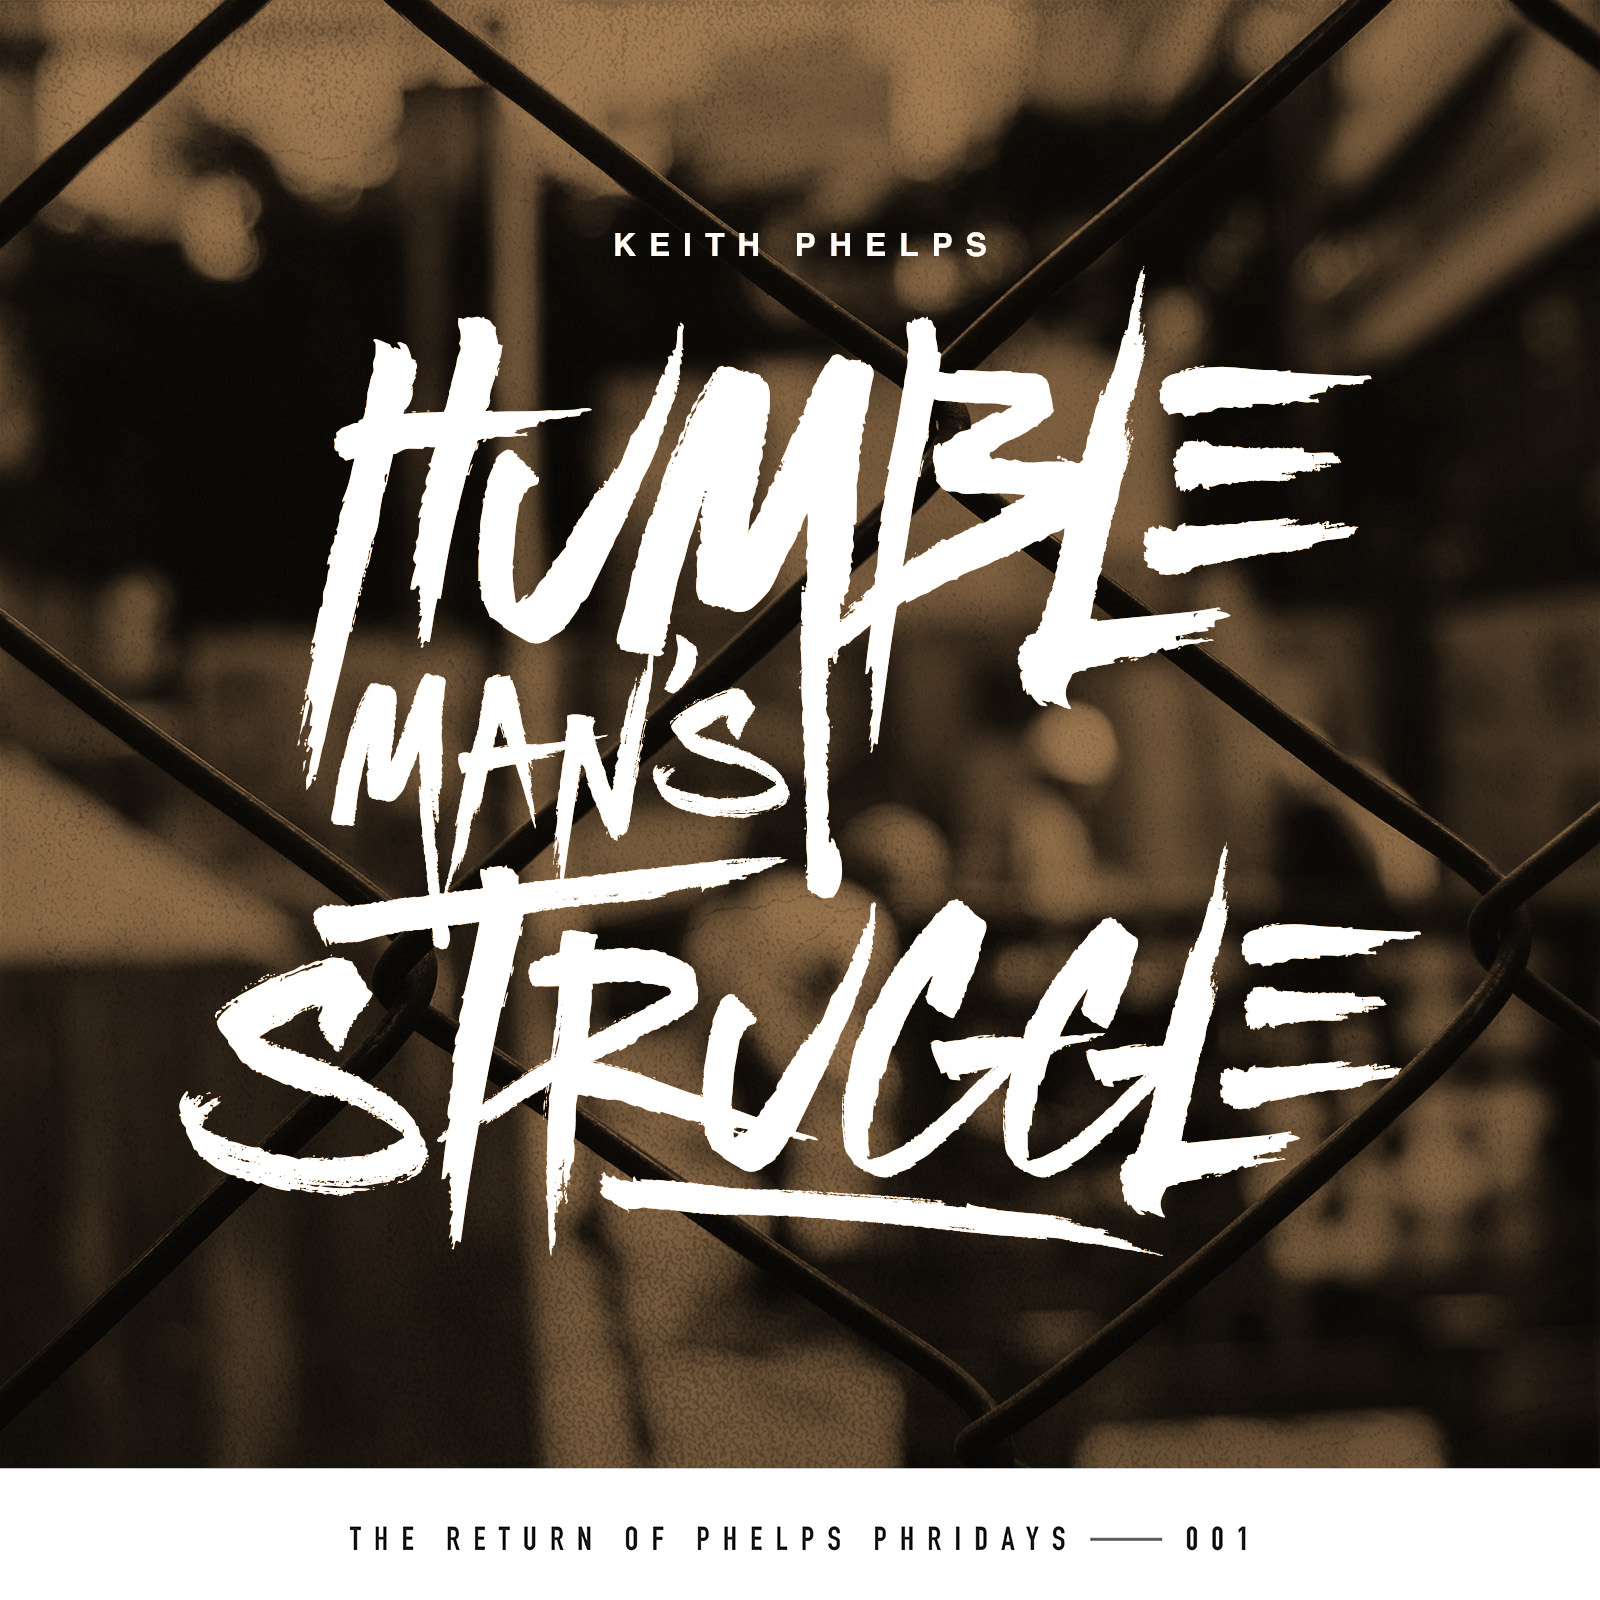 Keith Phelps - Humble Man's Struggle (Single)